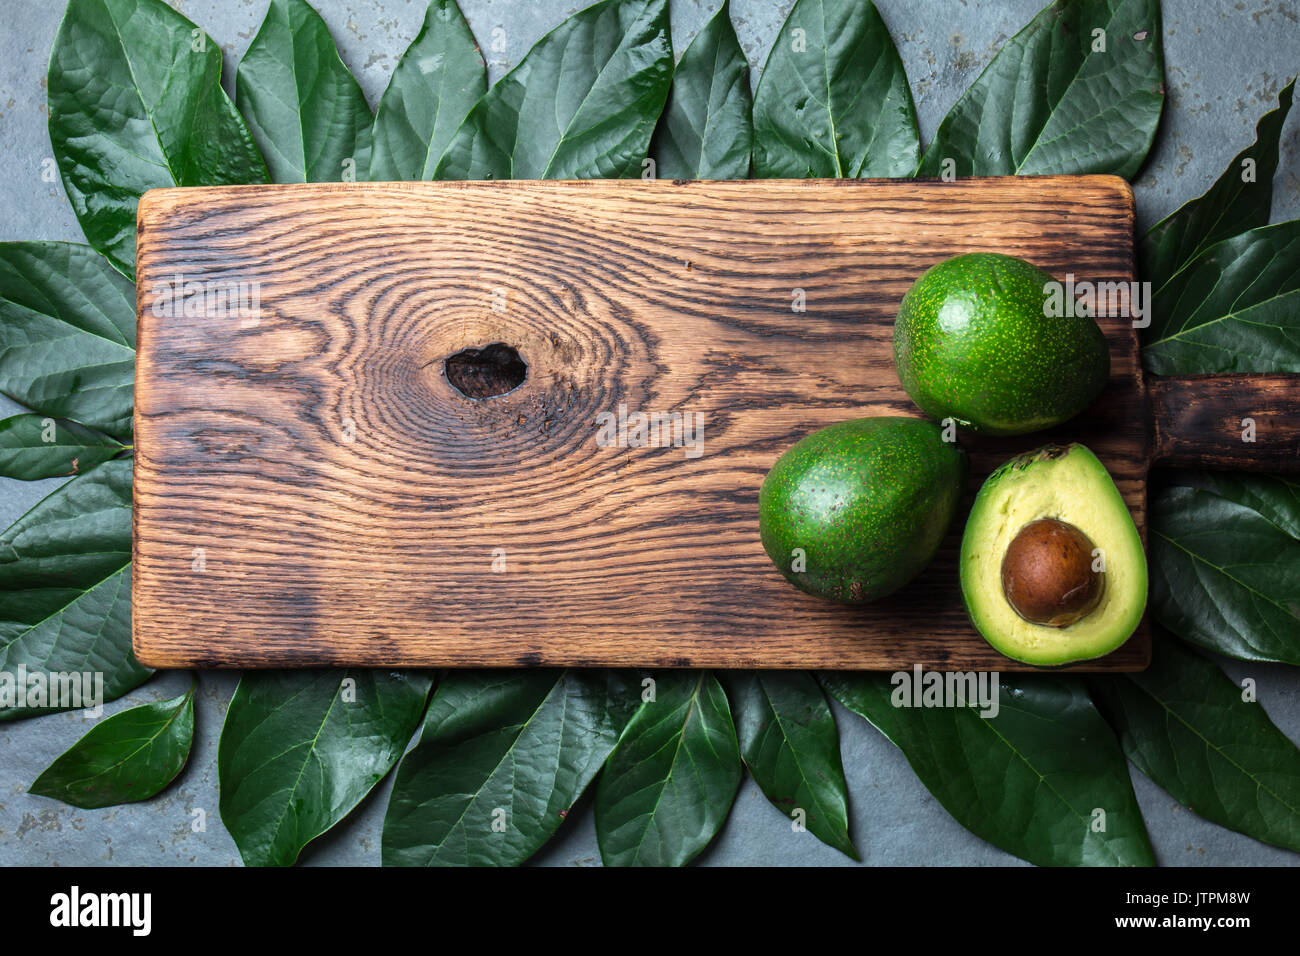 food background with fresh avocado, avocado tree leaves and wooden cutting board. Harvest concept, Guacamole ingredients. - Stock Image